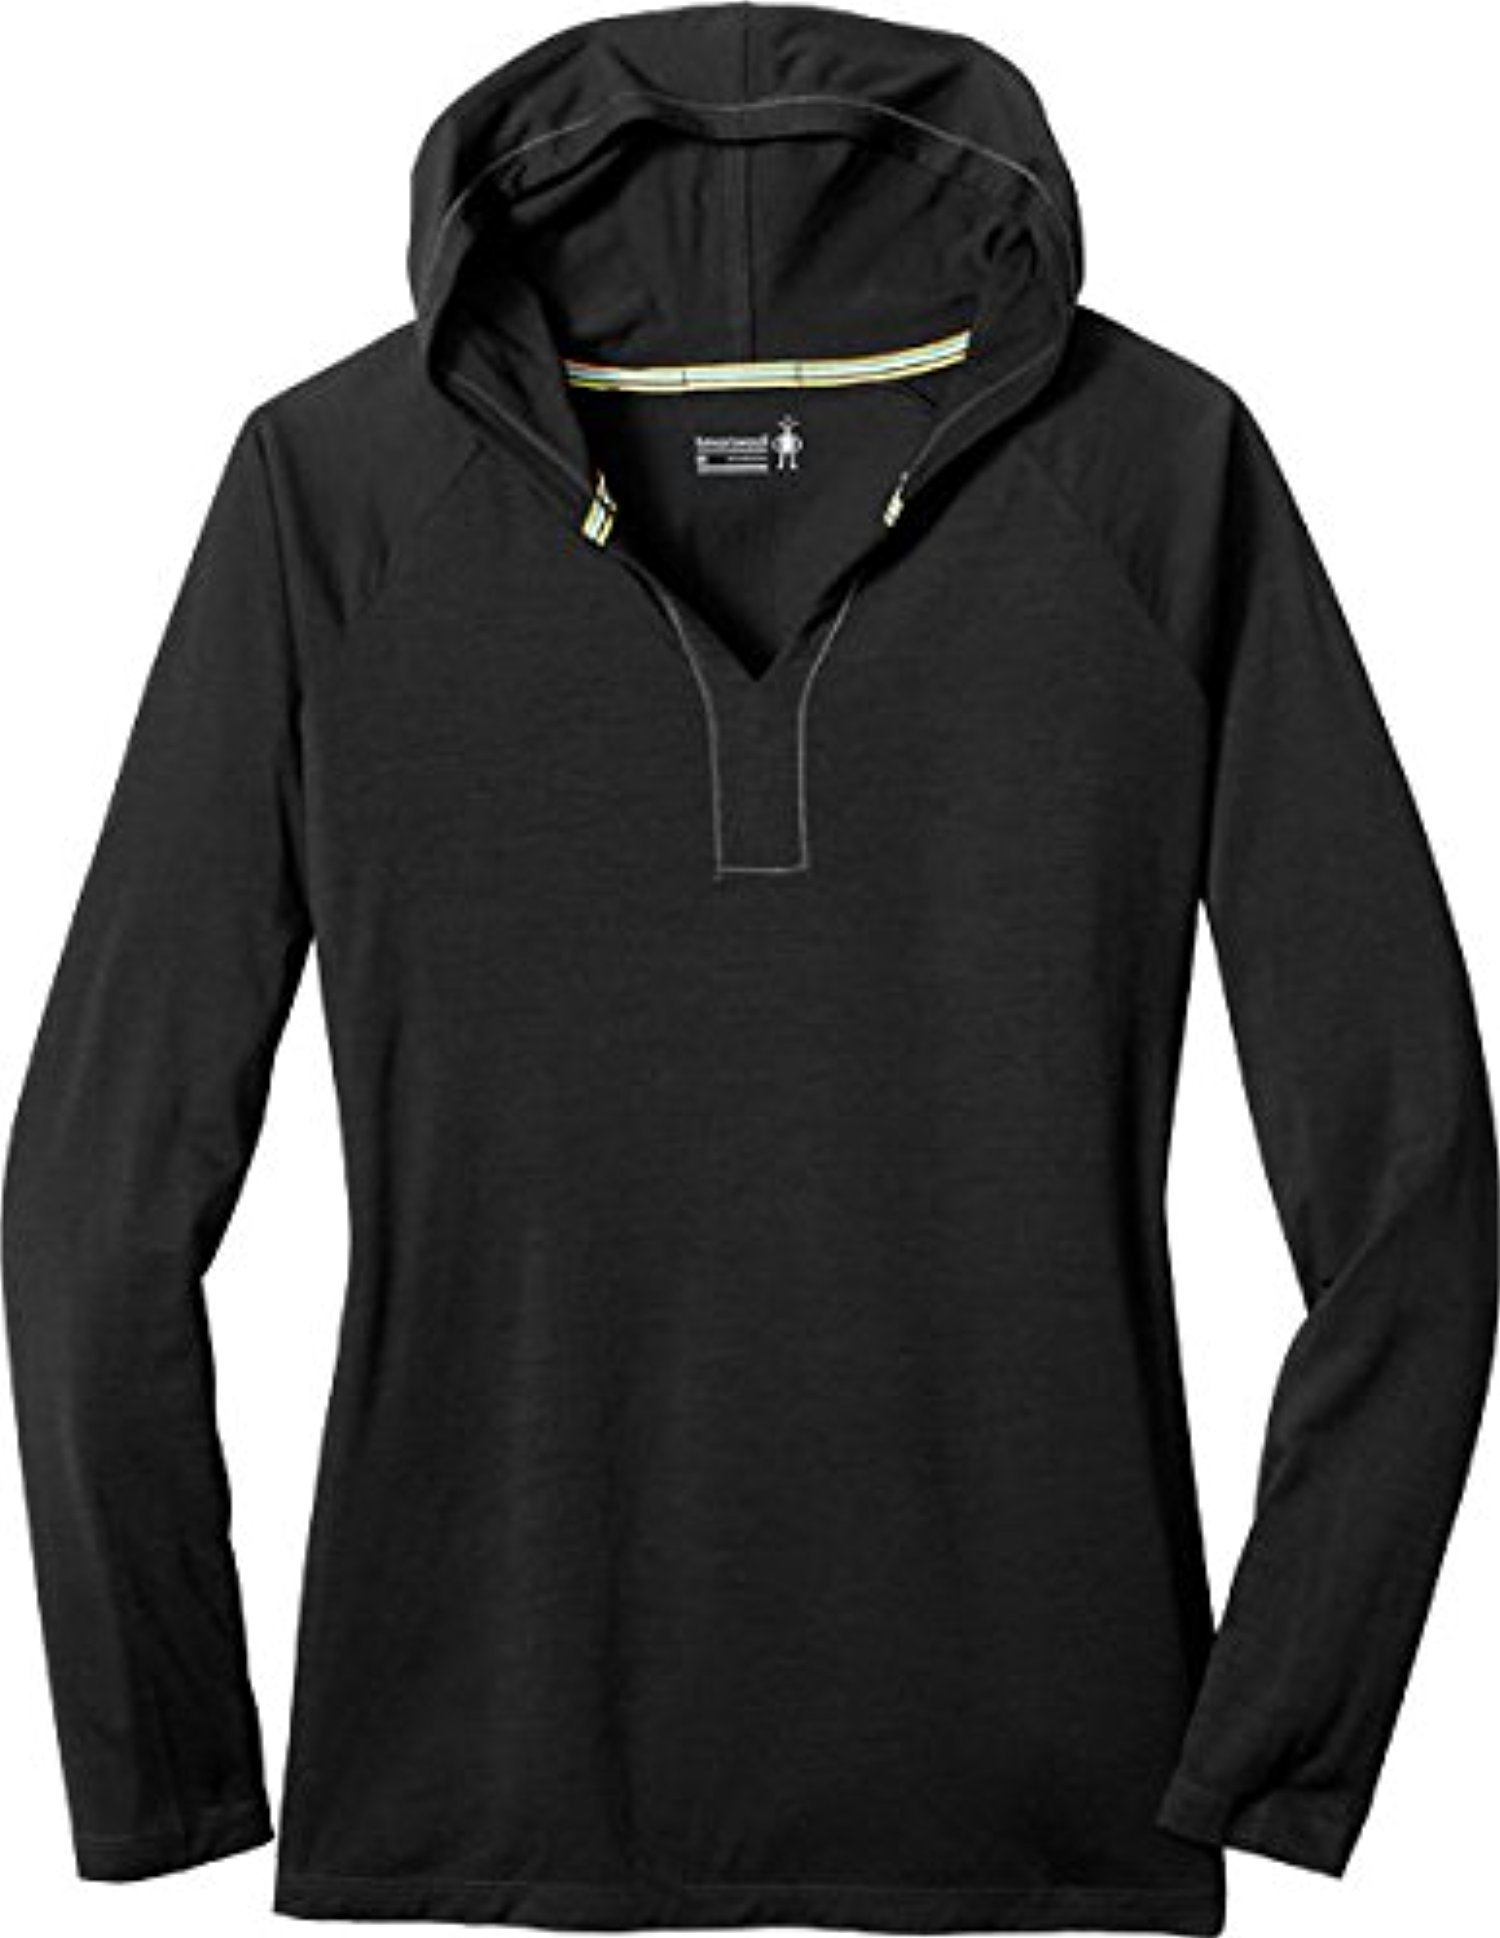 smartwool Women's Merino 150 Hoody Black S & E-Tip Glove Bundle by SmartWool, USA